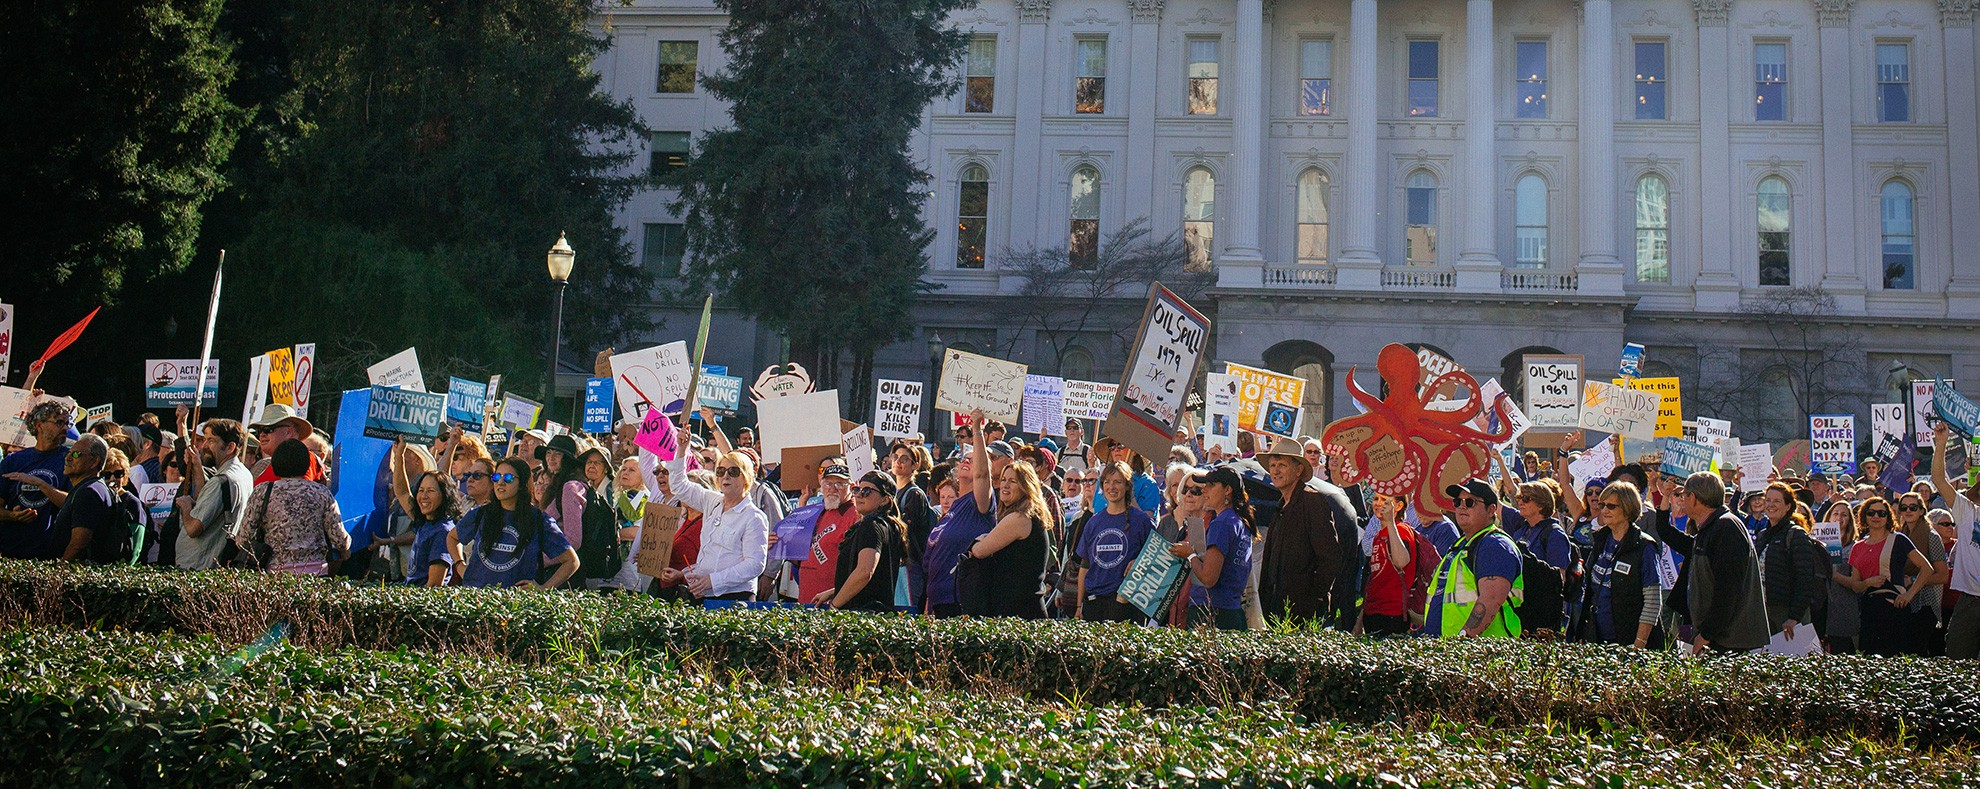 Supporters rally in Sacramento to submit public comments on attempts to expand offshore oil drilling.